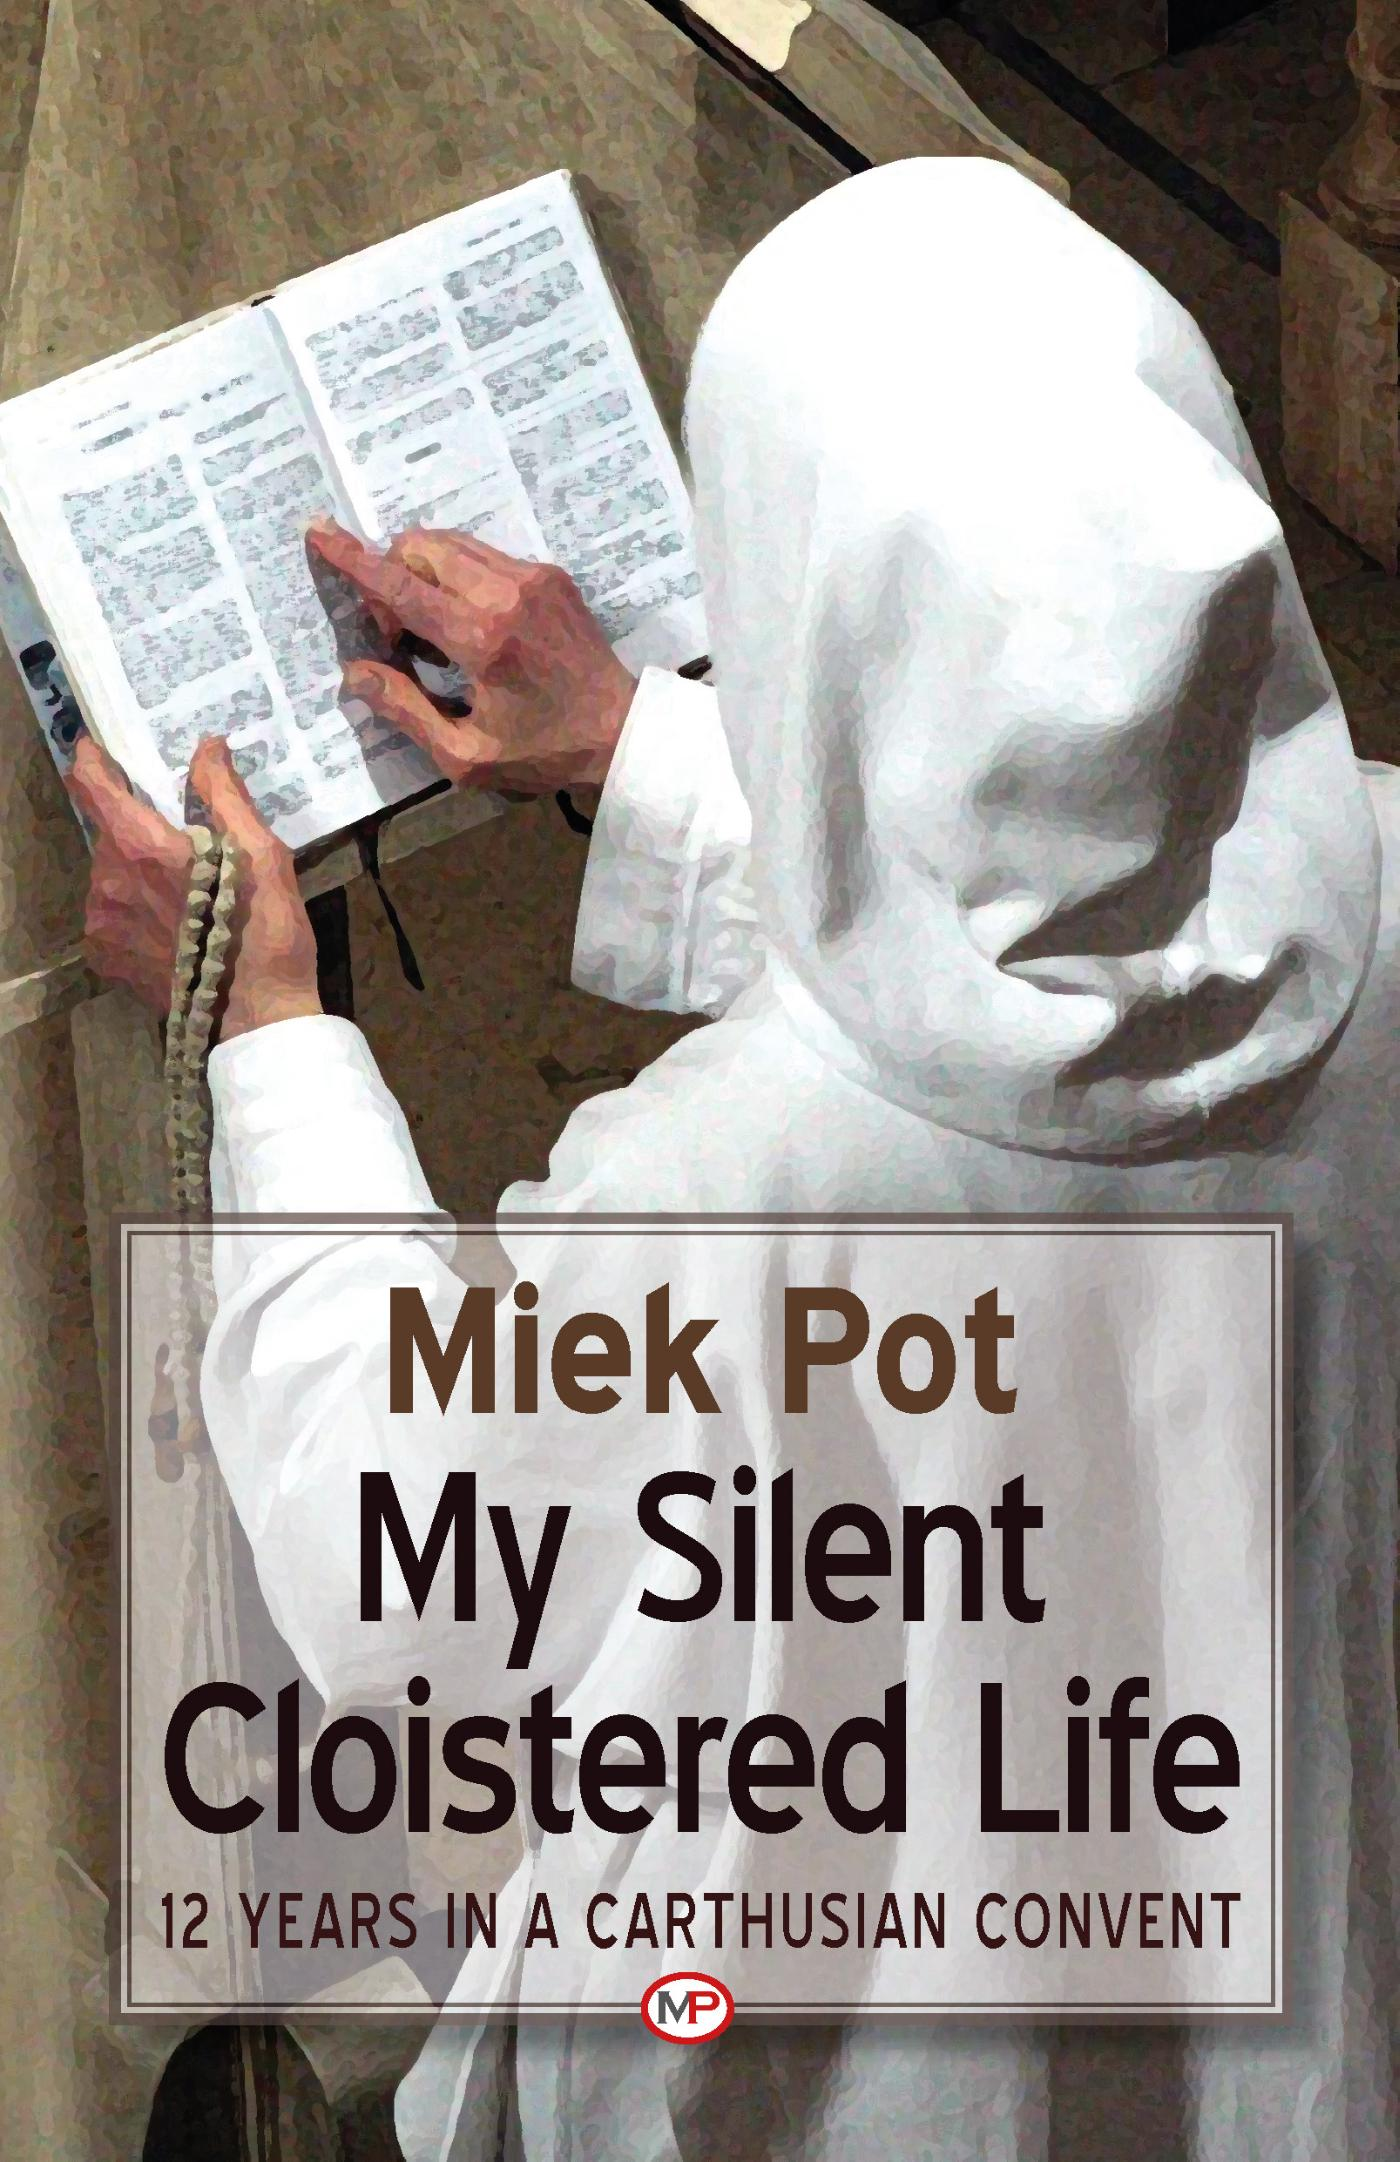 My silent cloistered life